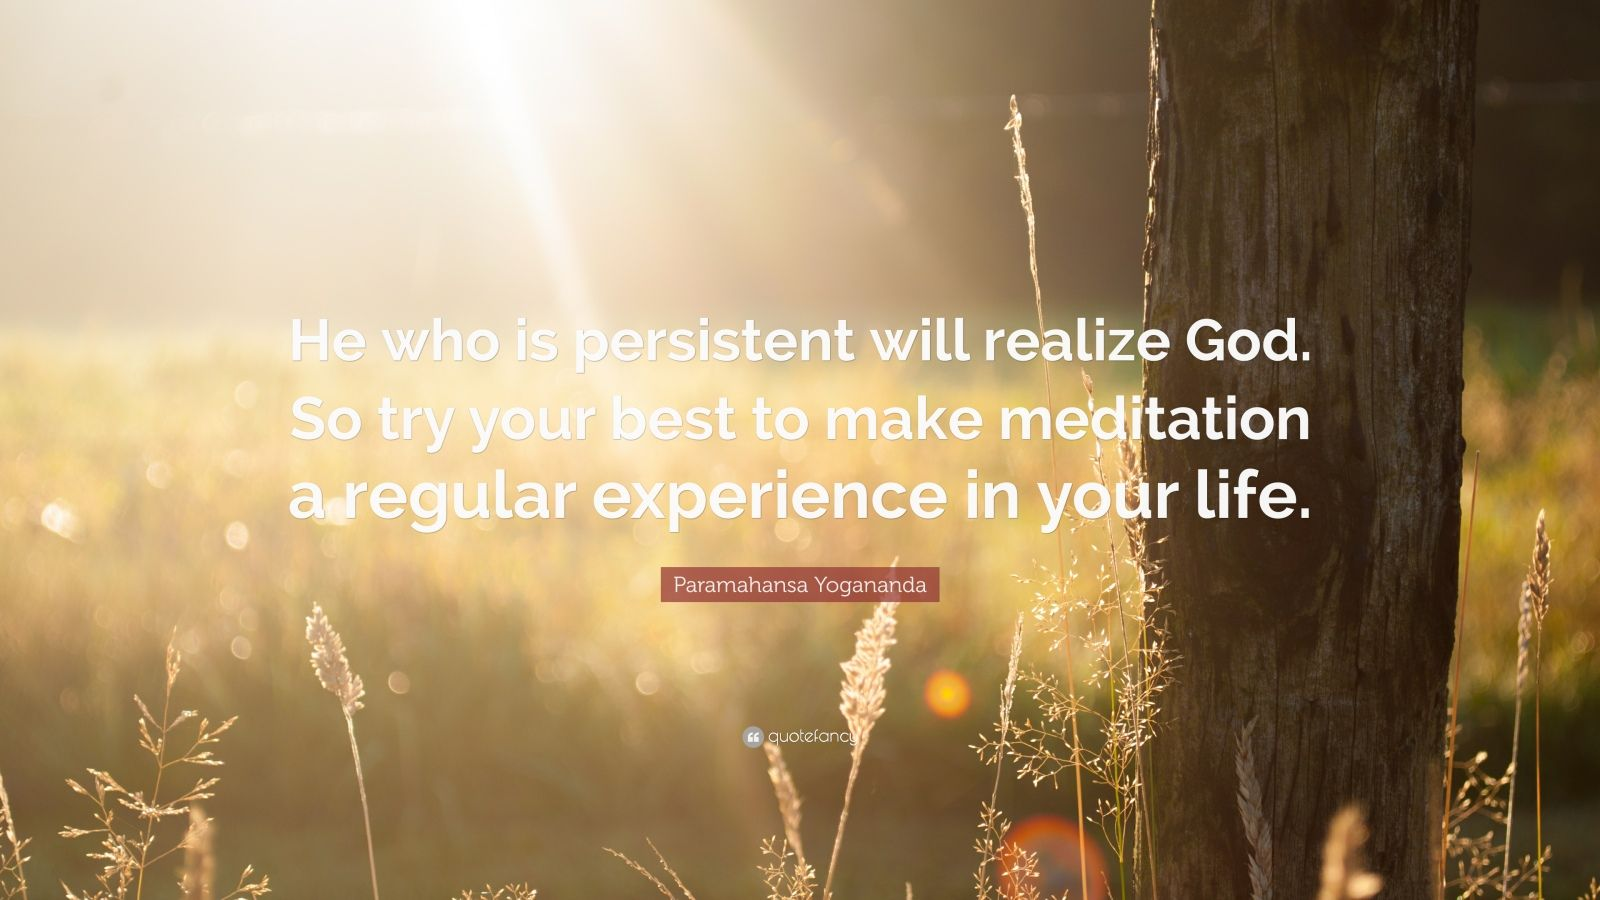 """Paramahansa Yogananda Quote: """"He who is persistent will realize God. So try your best to make meditation a regular experience in your life."""""""